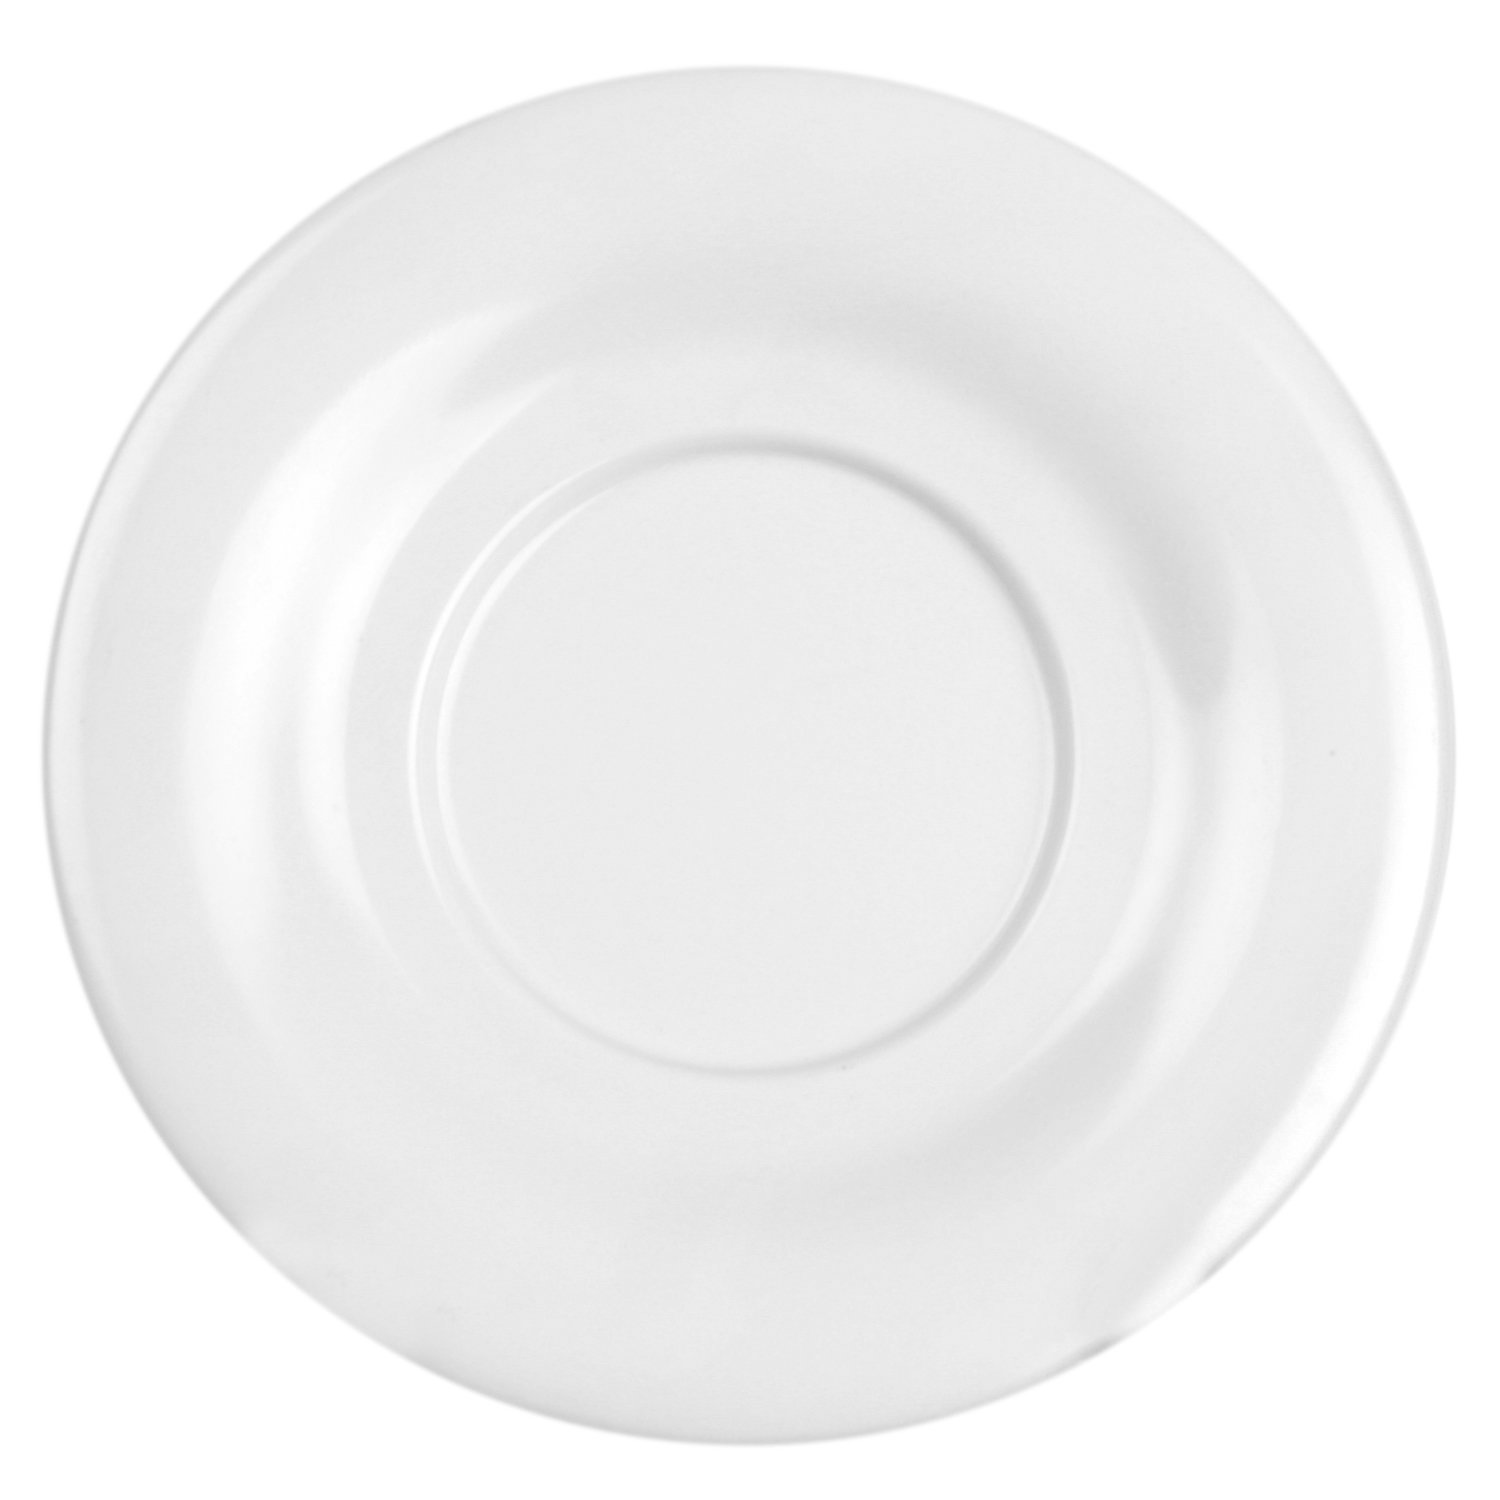 Excellante 12-Piece Saucer for Models Cr313/Cr5044/Ml901/Ml9011, White